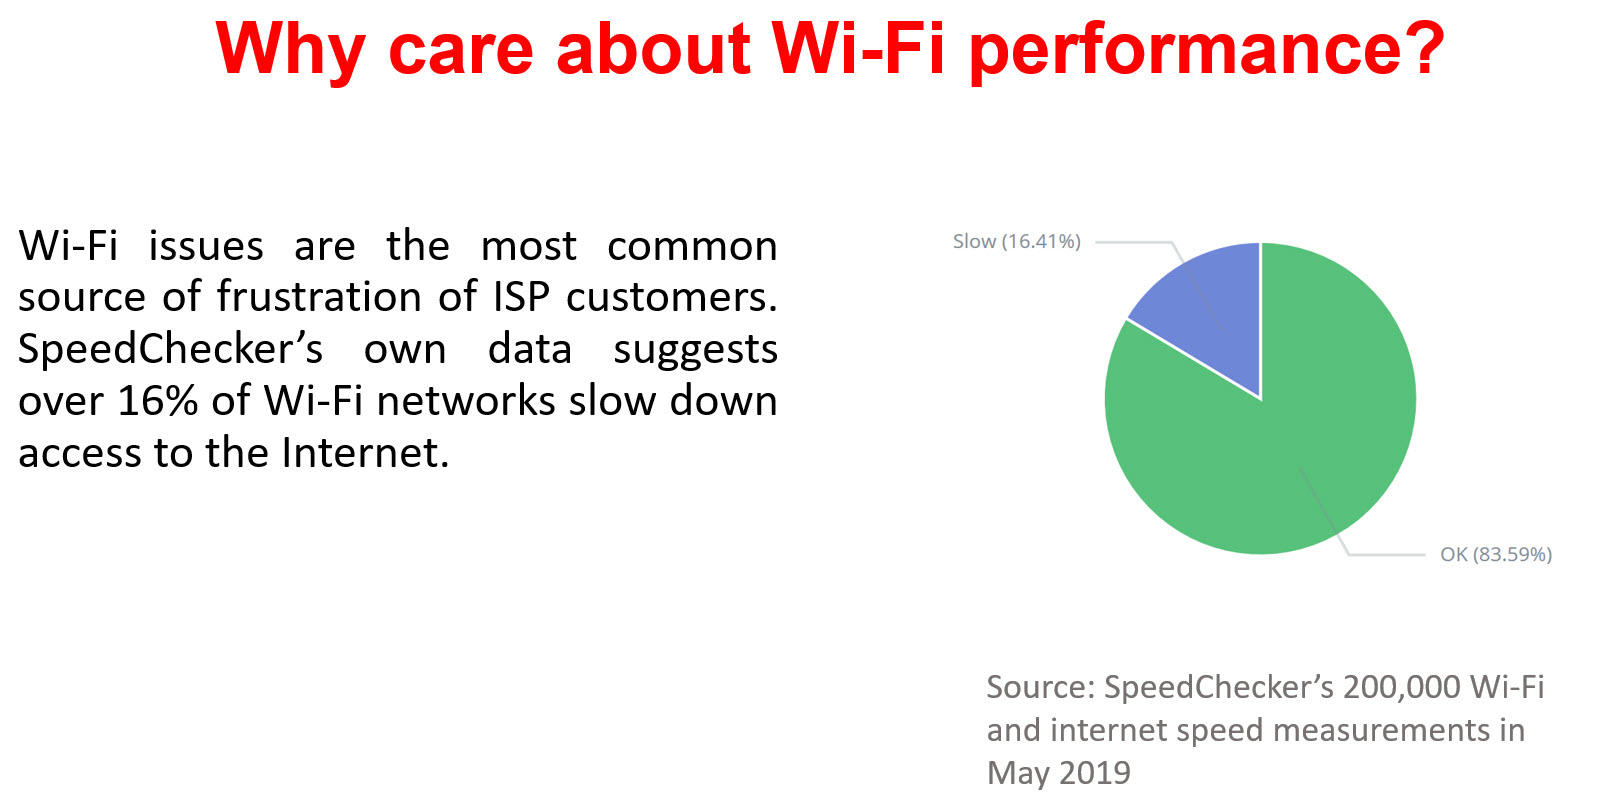 Wy care abut Wi-Fi performance?